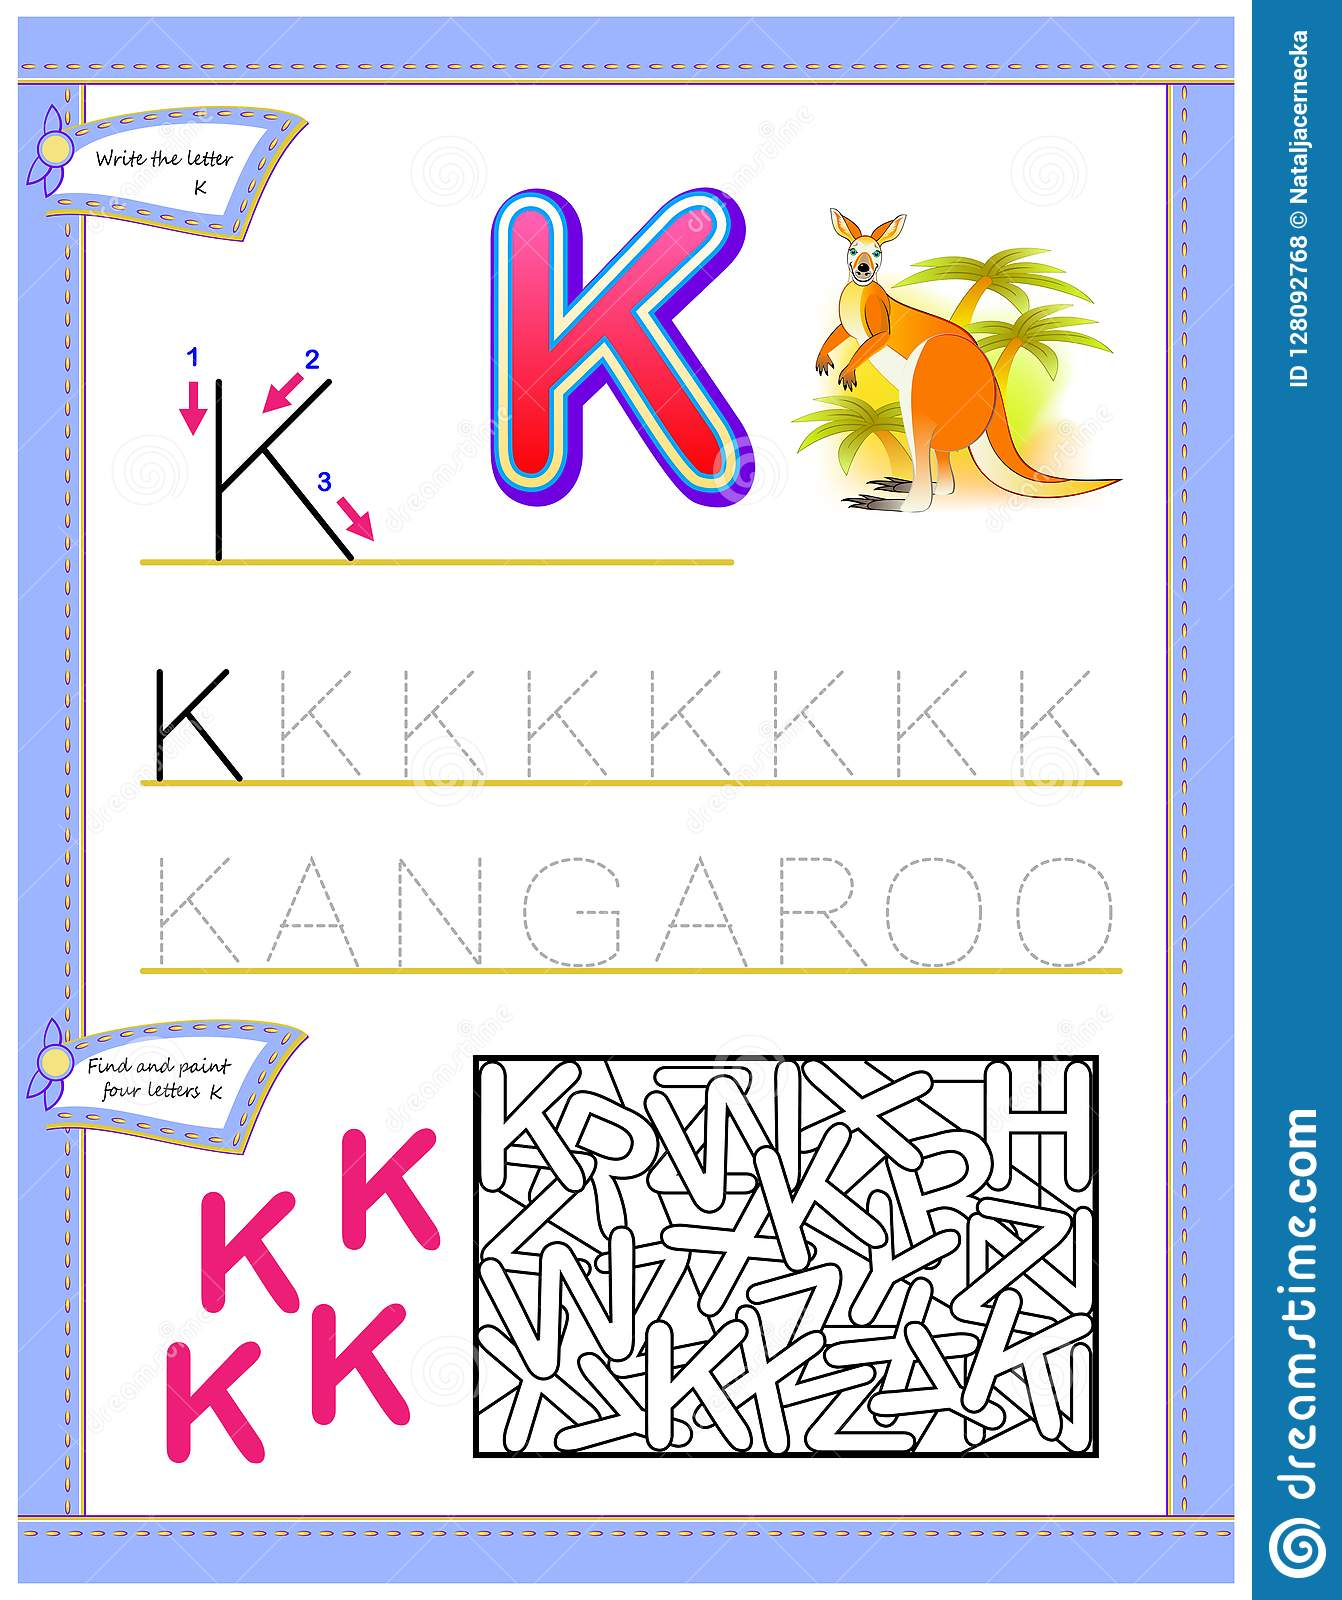 Worksheet For Kids With Letter K For Study English